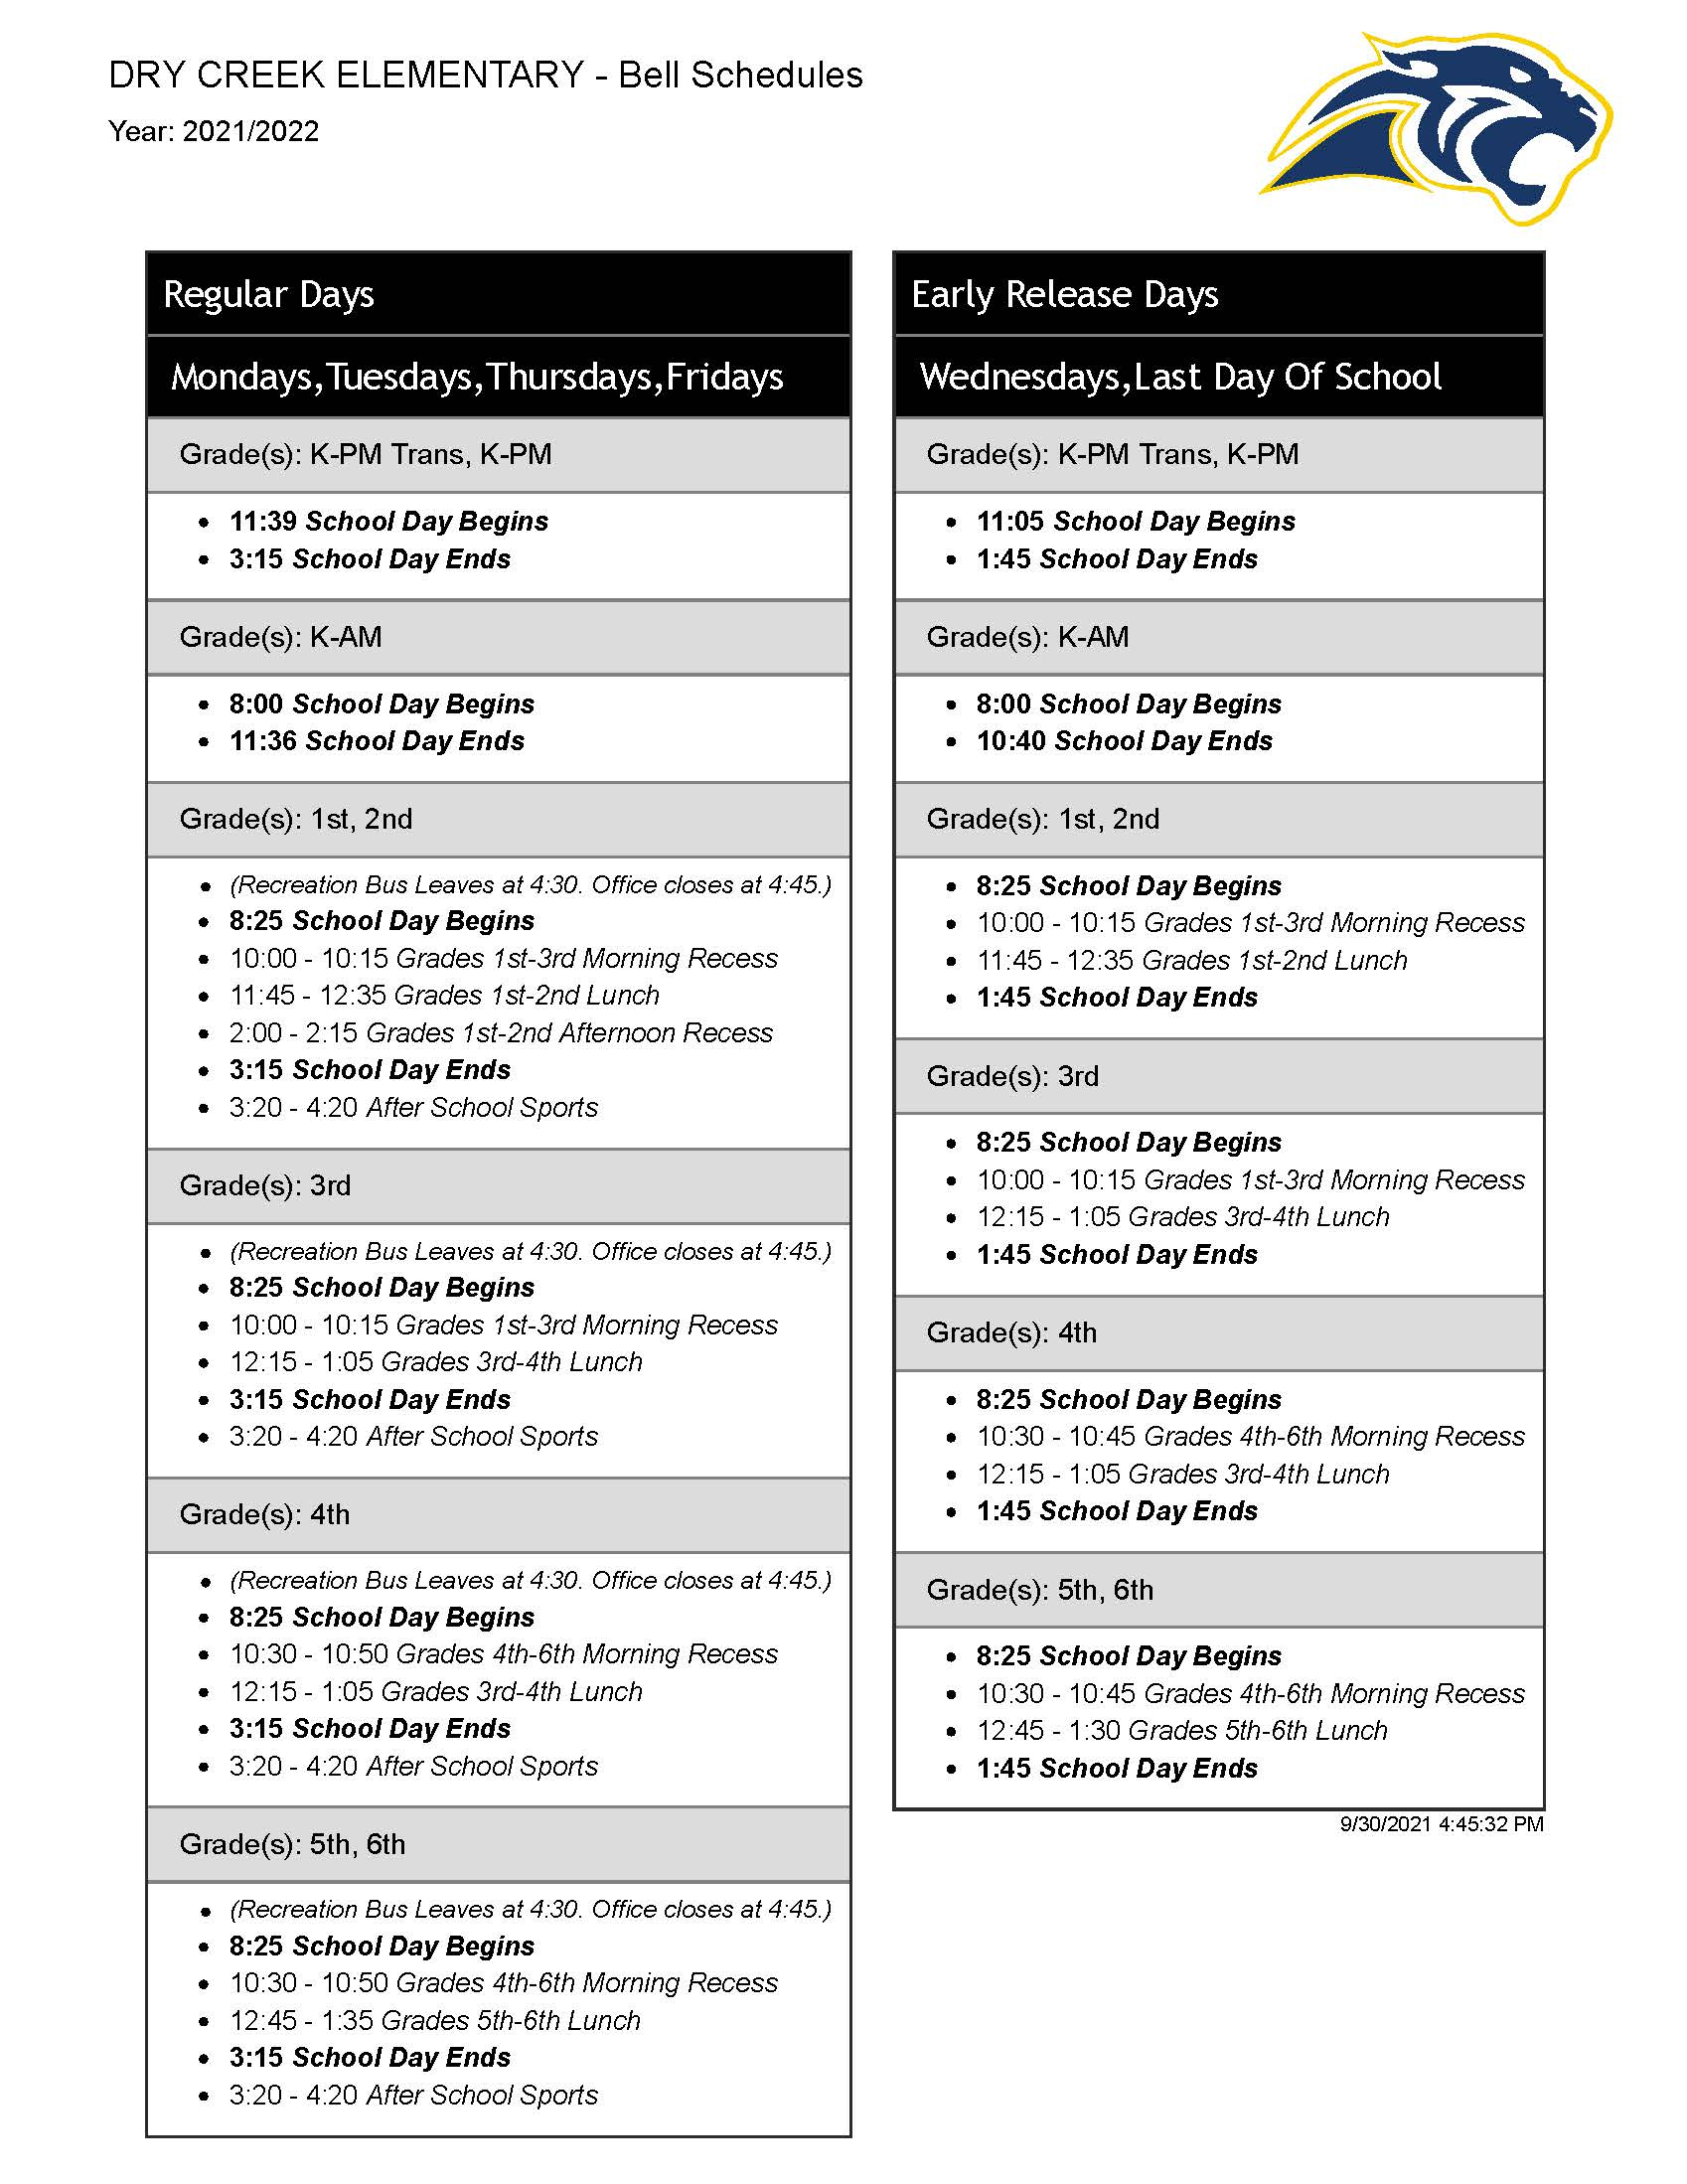 bell schedule – full text downloadable on page